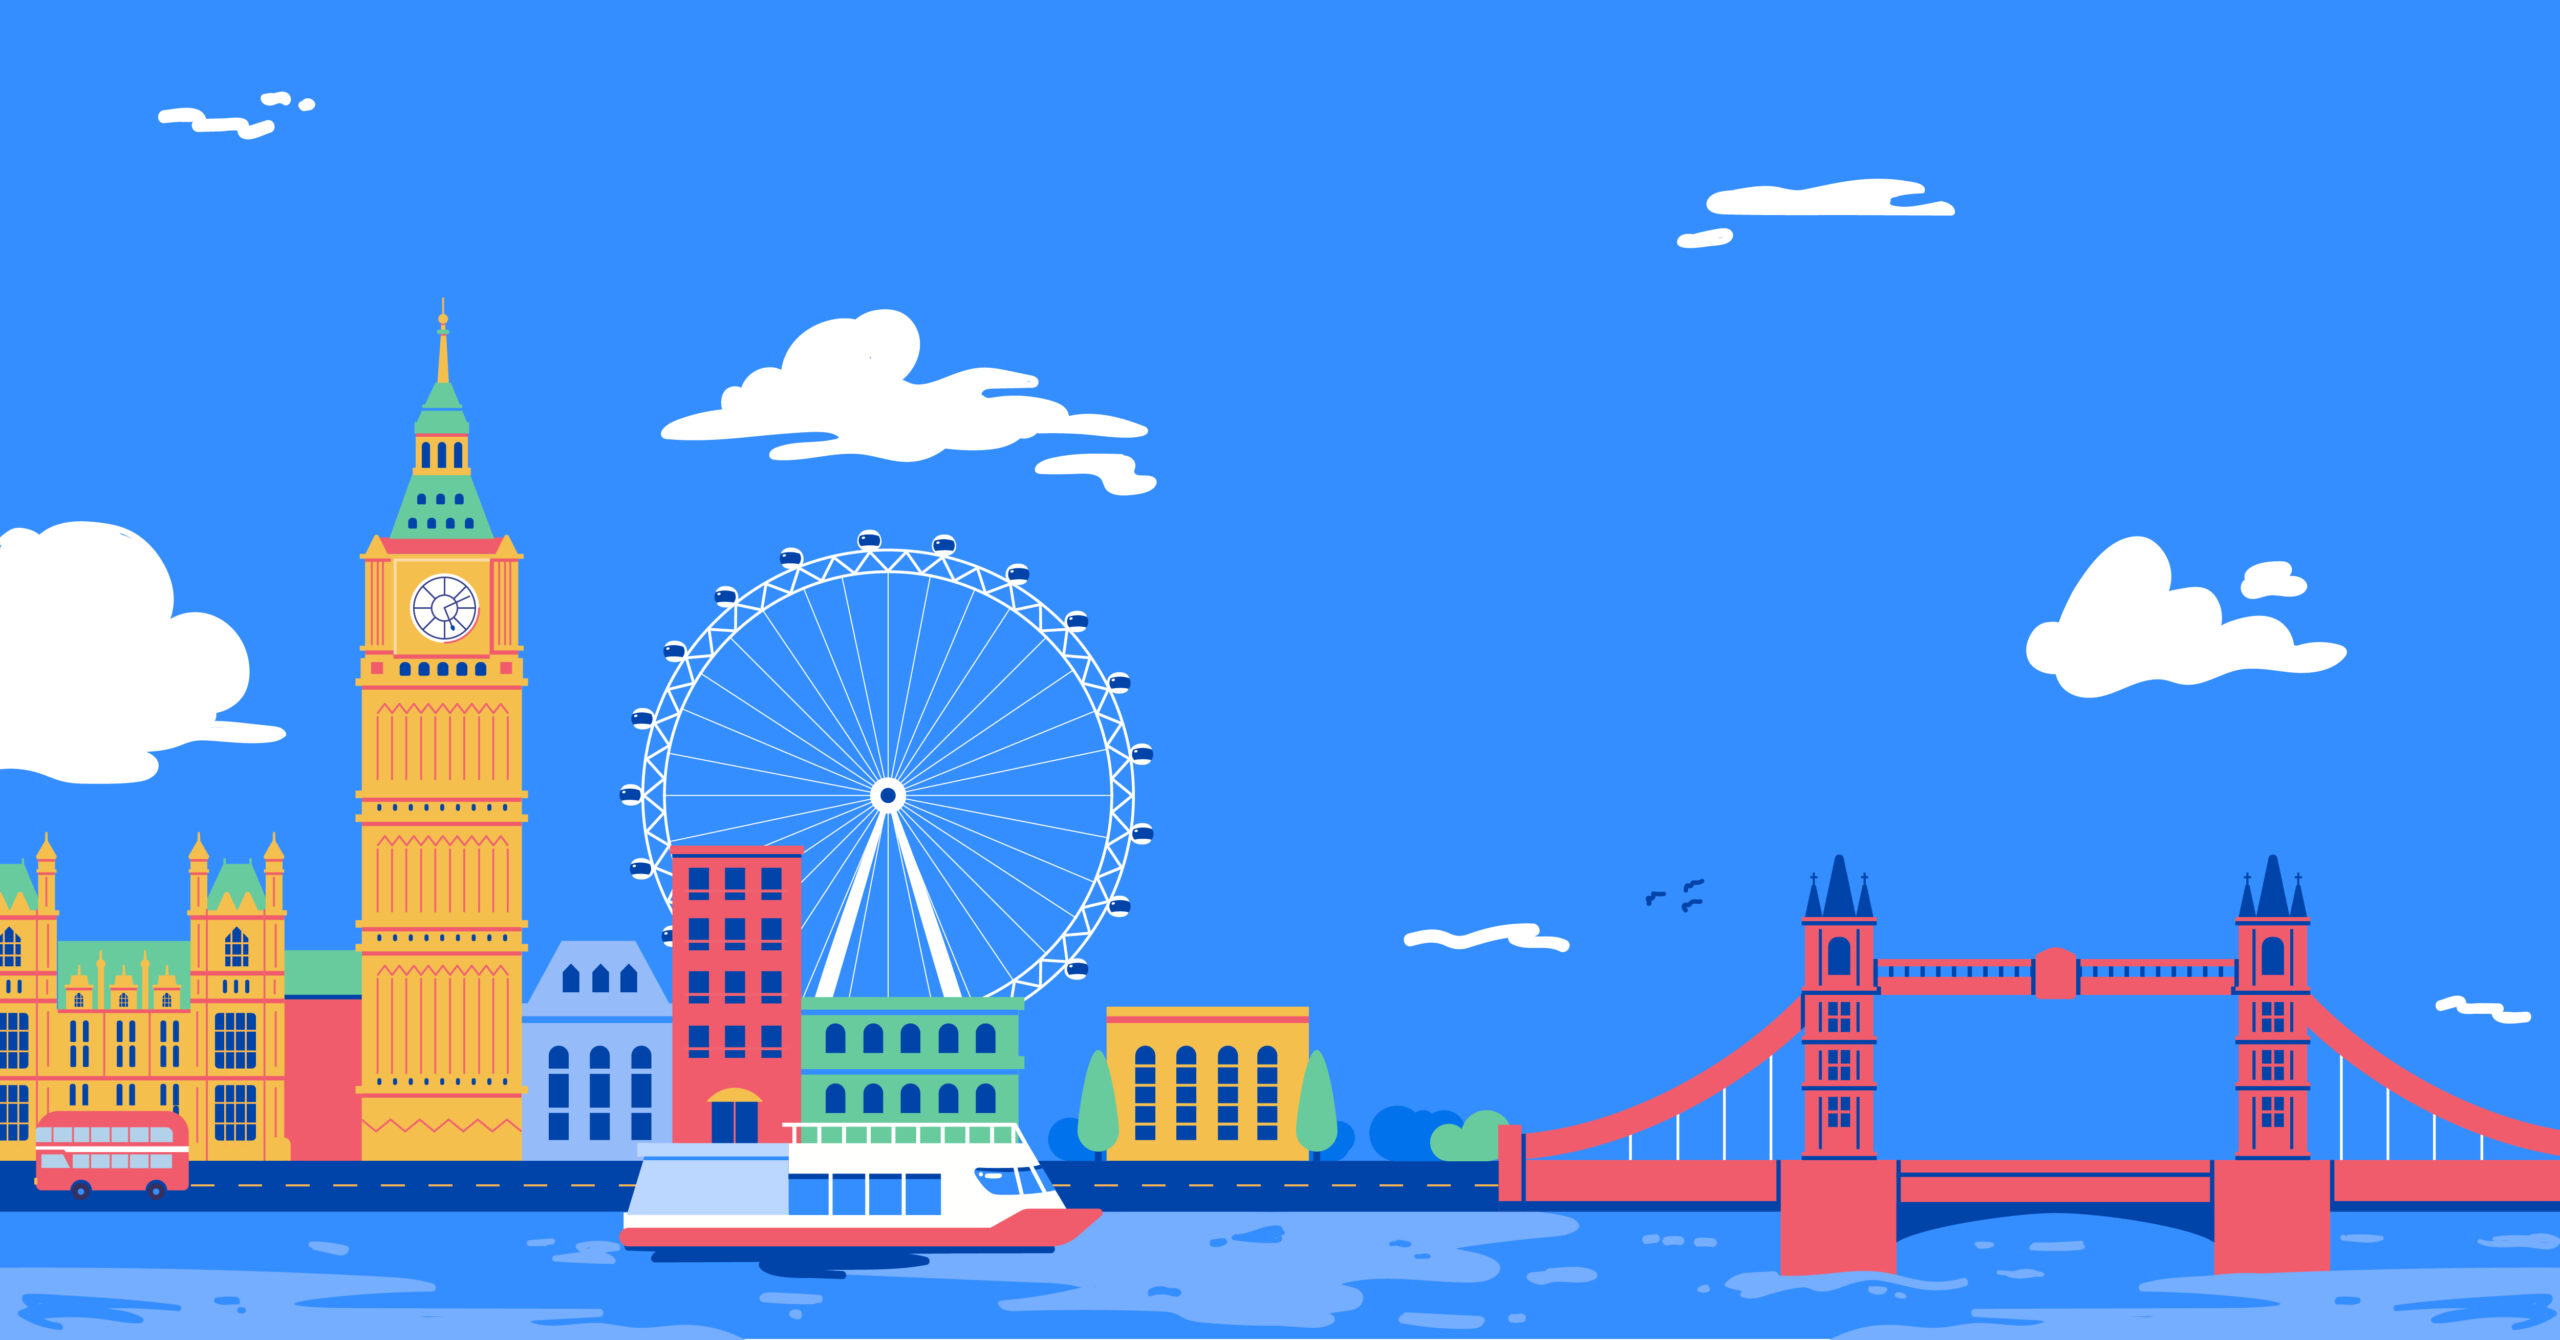 Illustration of iconic London sights